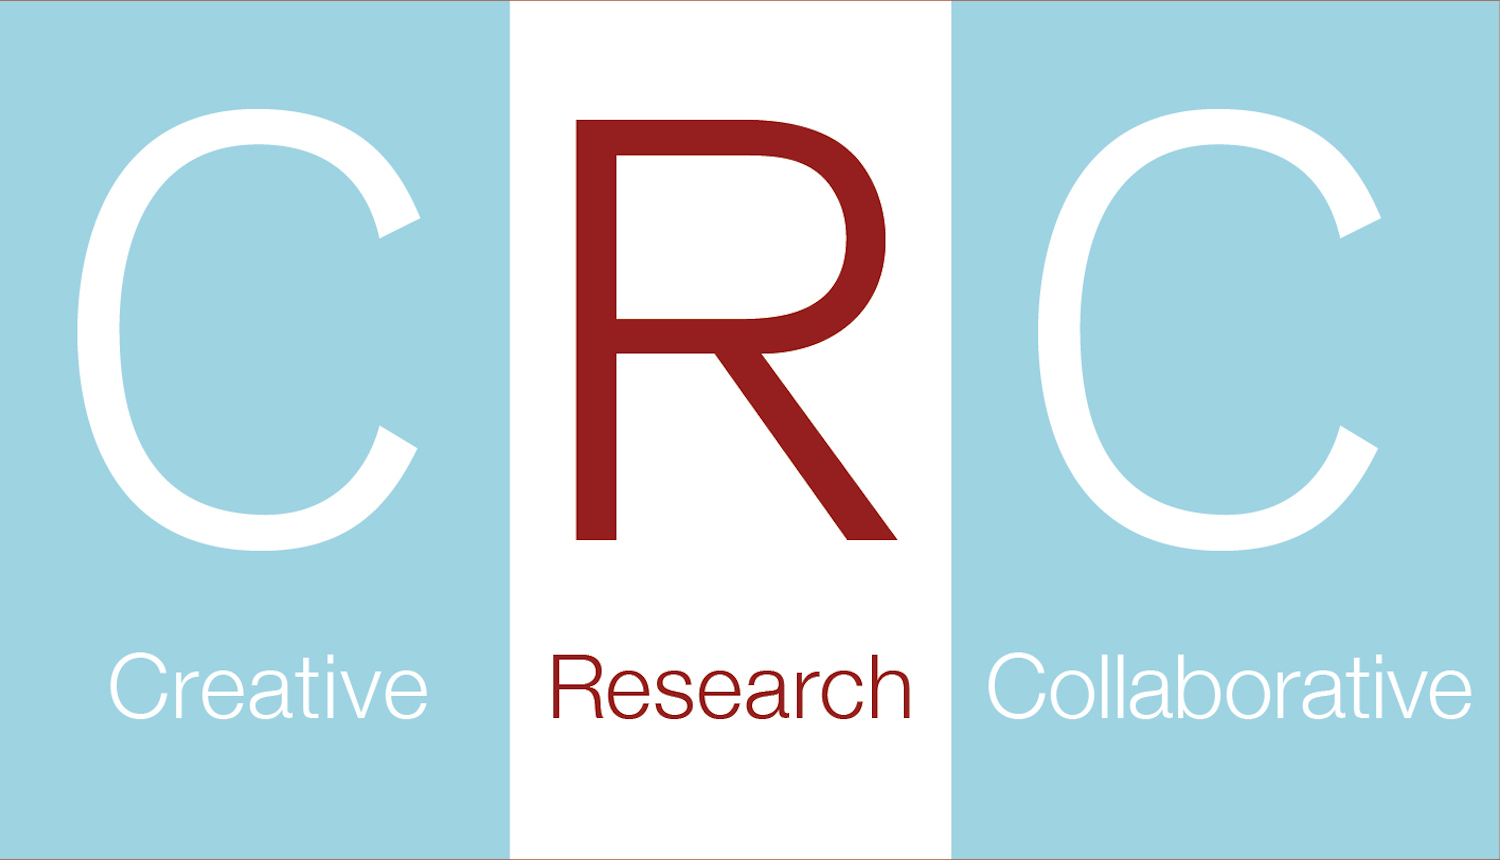 Creative, Research, Collaboration logo